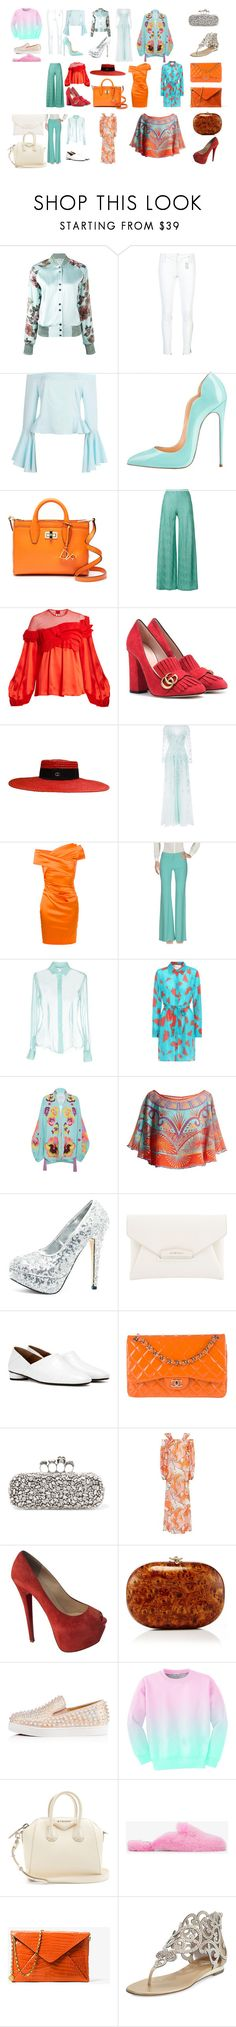 """Weekend away2"" by matan-sowatskey on Polyvore featuring La Perla, Thomas Wylde, Boohoo, Diane Von Furstenberg, M Missoni, Givenchy, Gucci, Zuhair Murad, Talbot Runhof and Balmain"